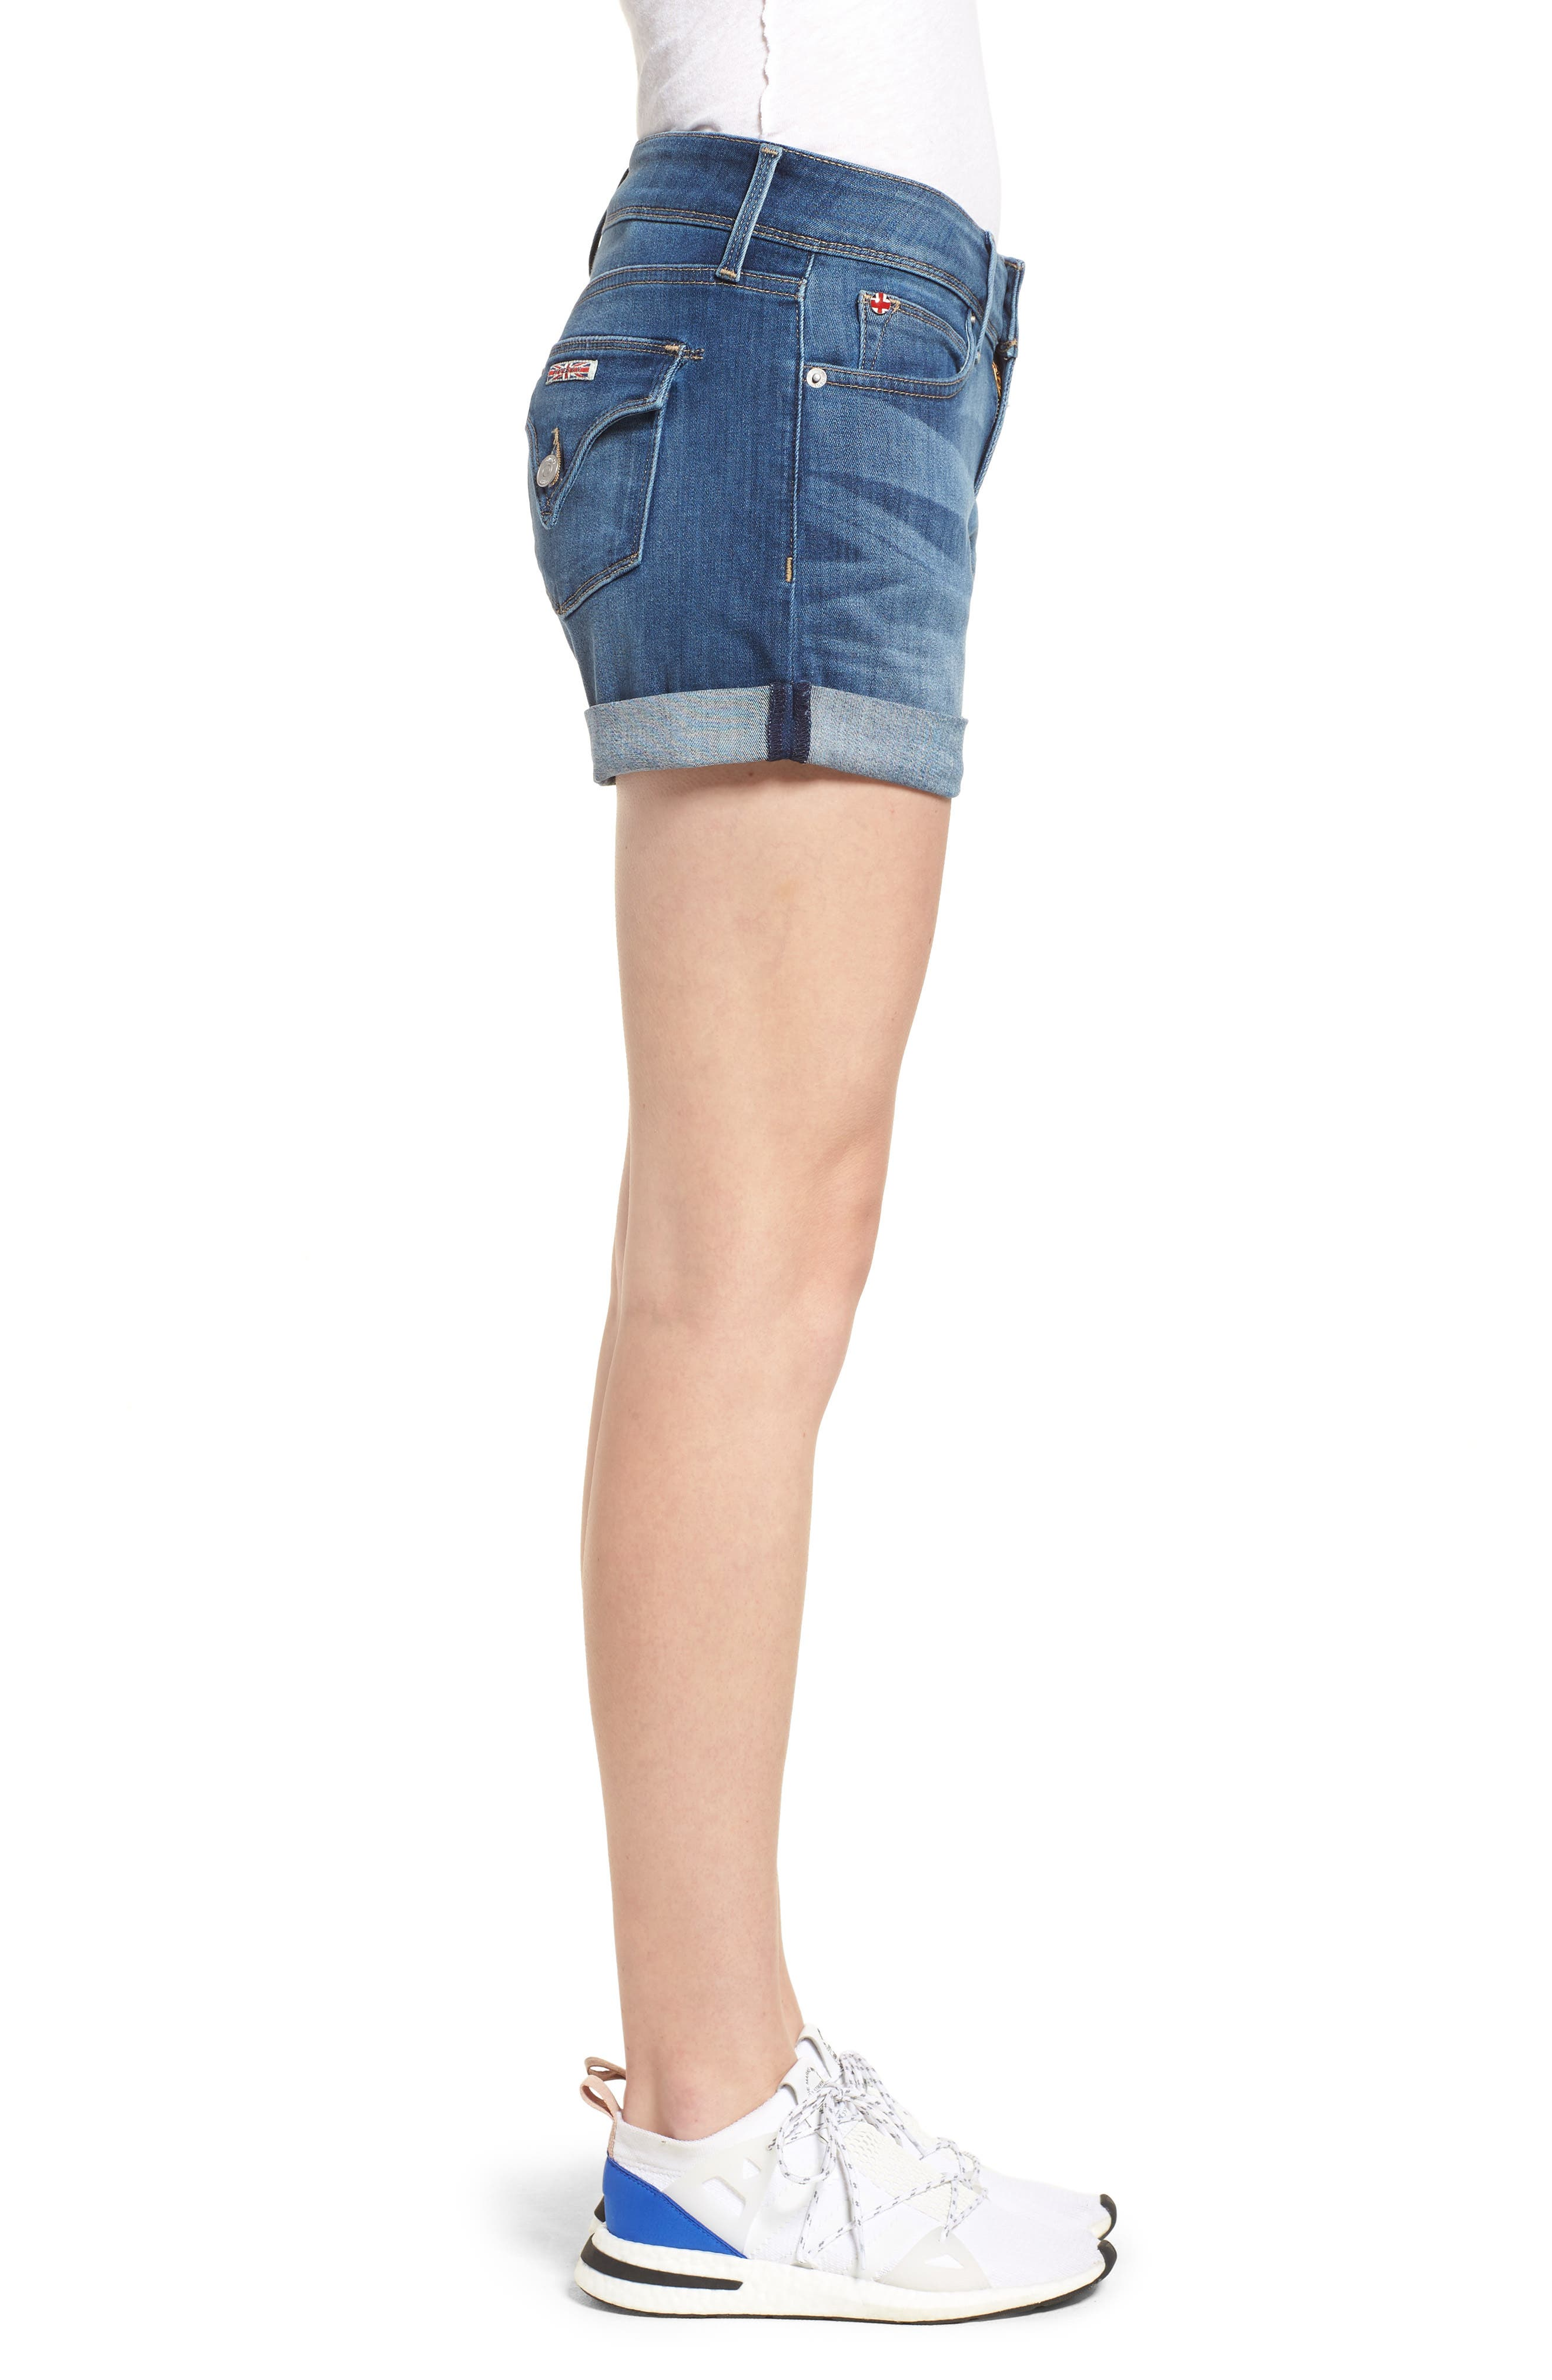 'Croxley' Cuffed Denim Shorts,                             Alternate thumbnail 3, color,                             Paramour